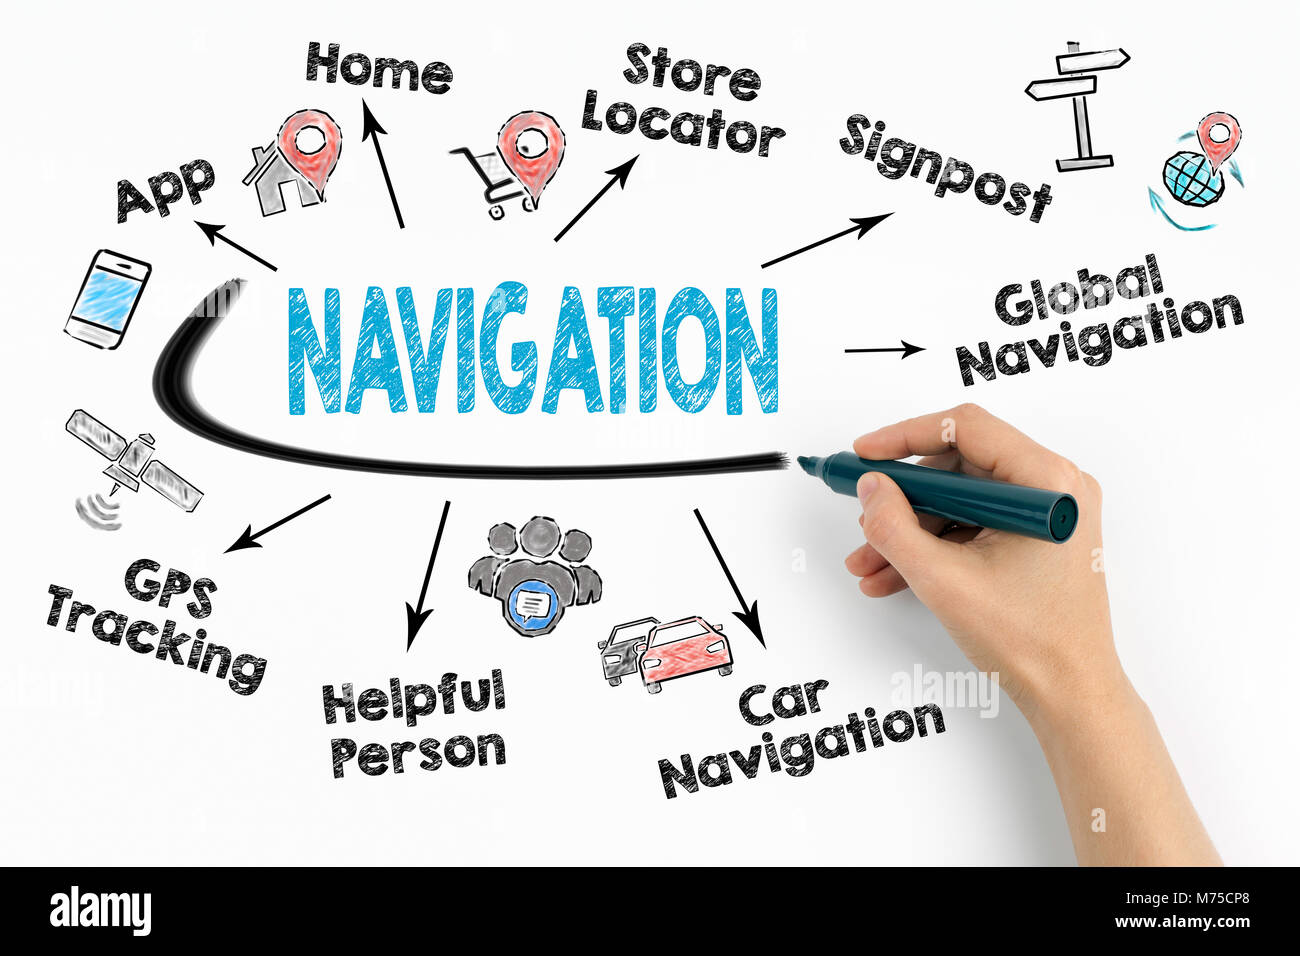 Navigation Concept. Chart with keywords and icons on white background - Stock Image